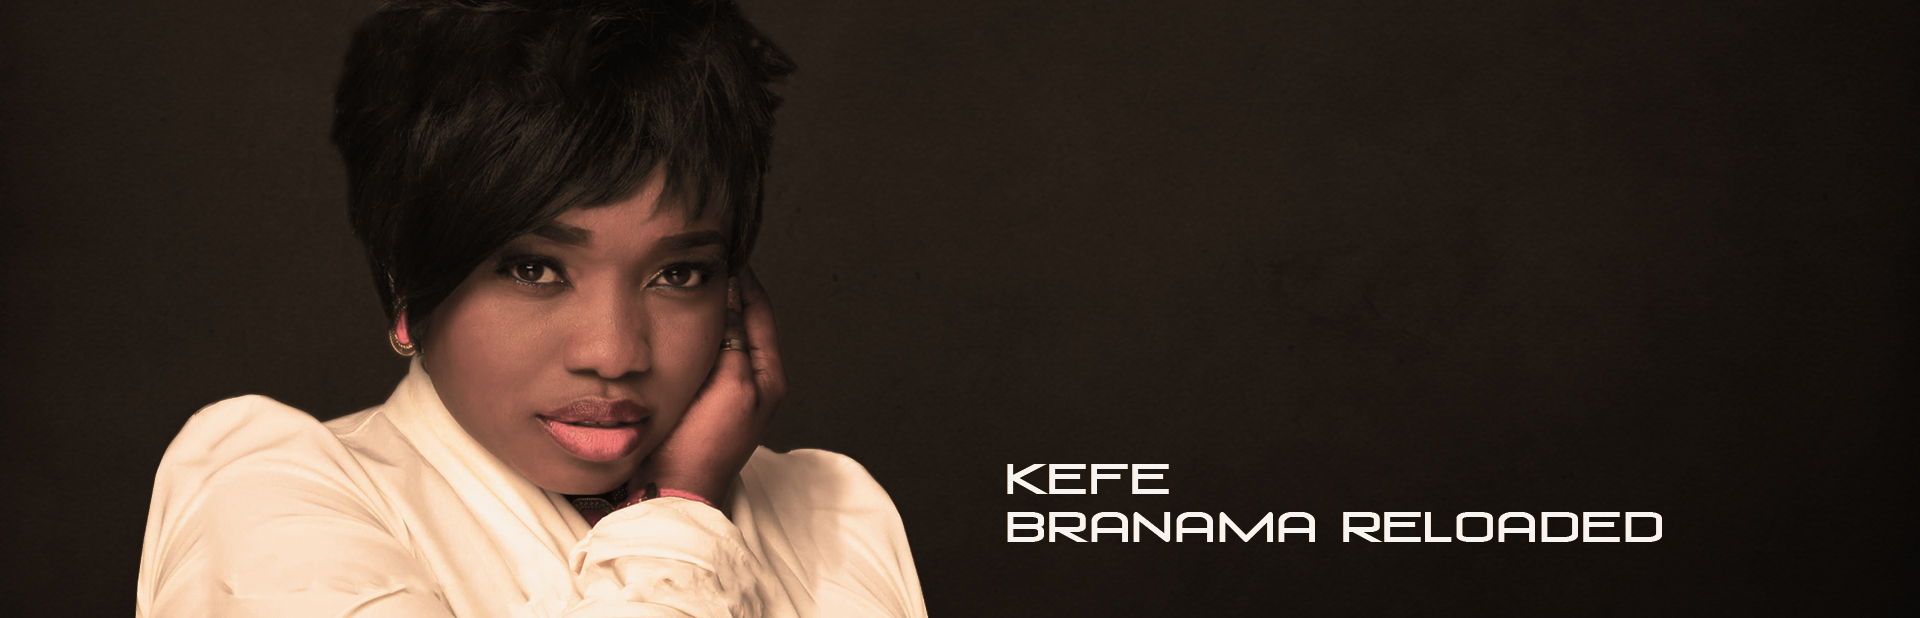 KEFE_Branama-reloaded